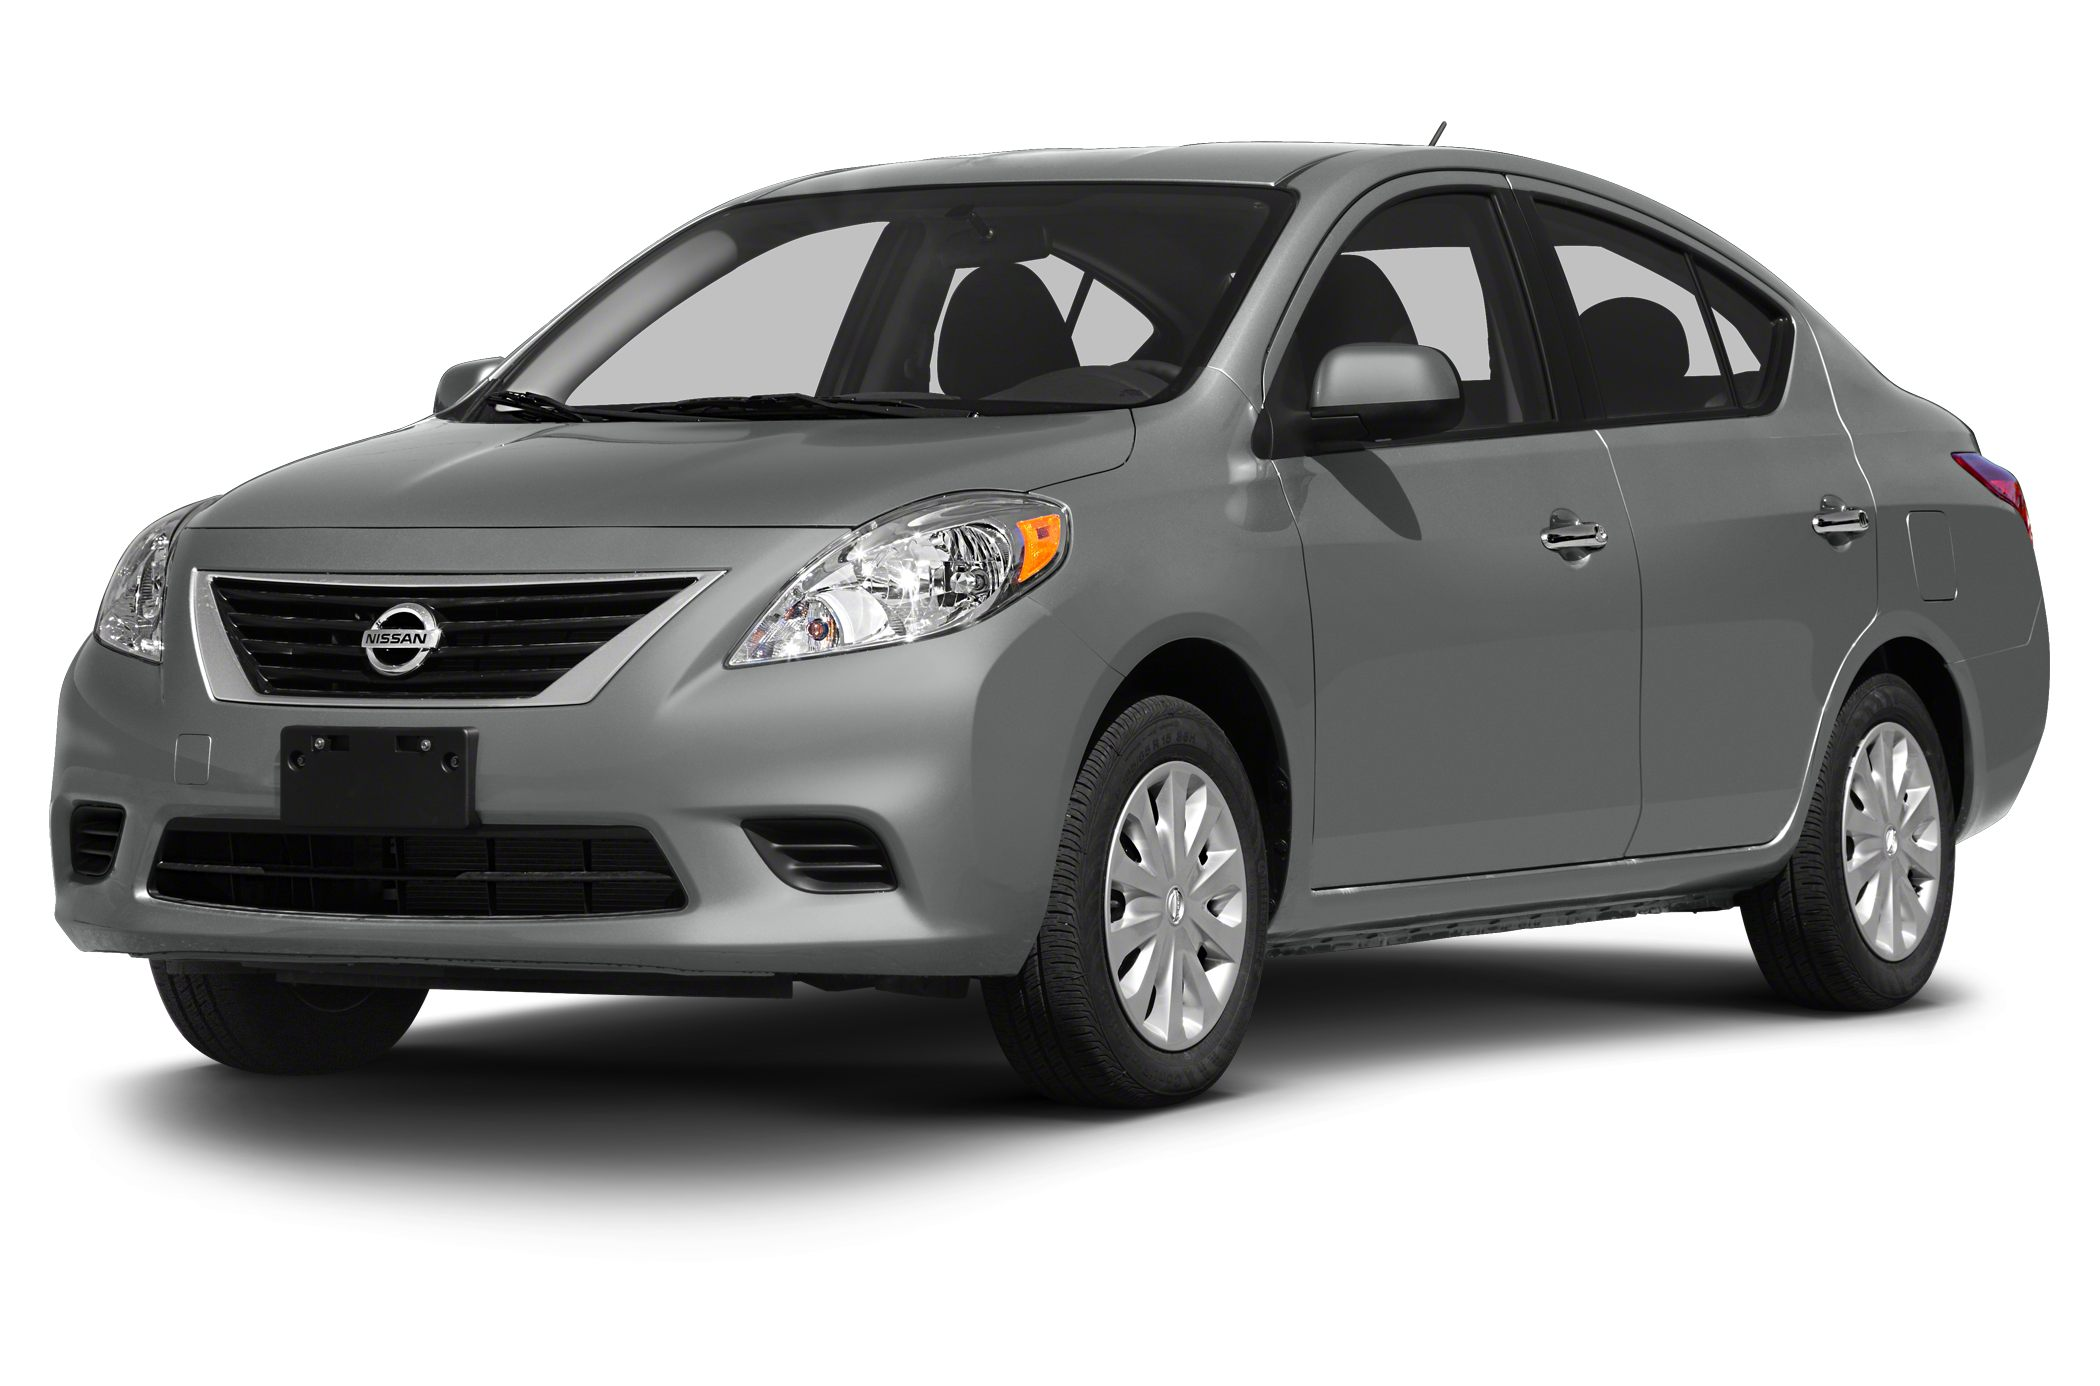 2013 Nissan Versa 1.6 S+ Sedan for sale in Maysville for $0 with 10,776 miles